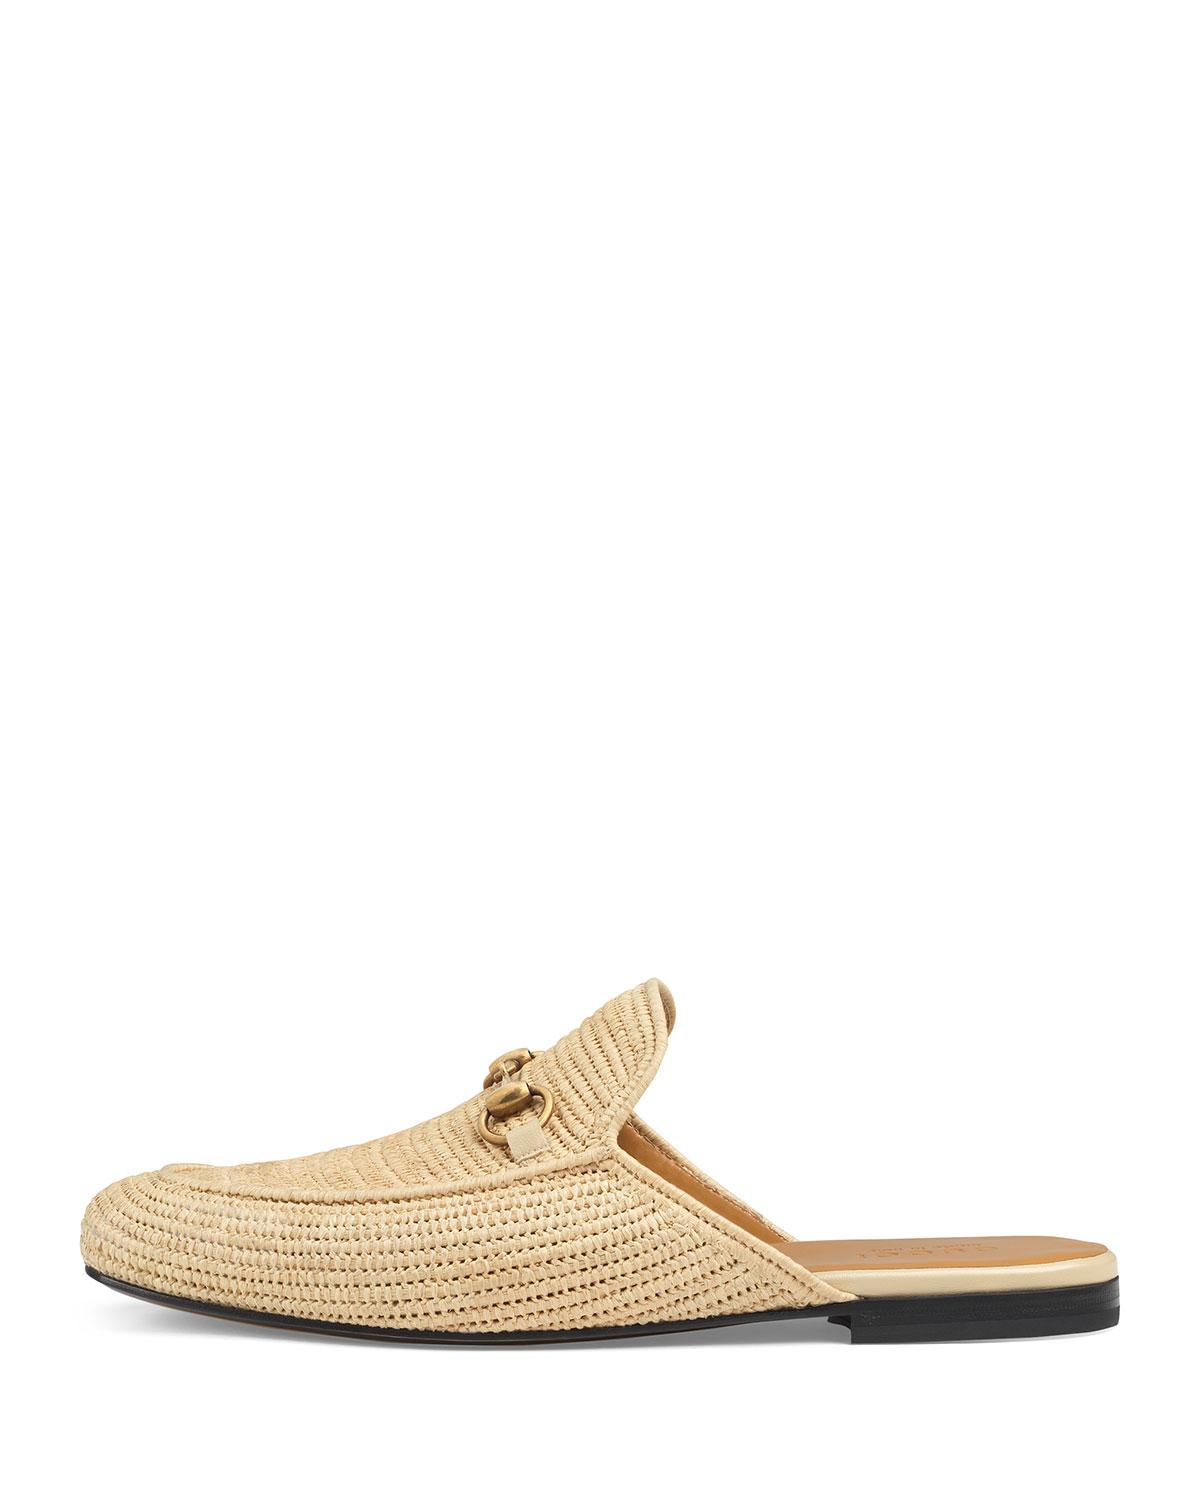 3eec8fab9f0a Lyst - Gucci Straw Princetown Slipper in Natural for Men - Save 60%